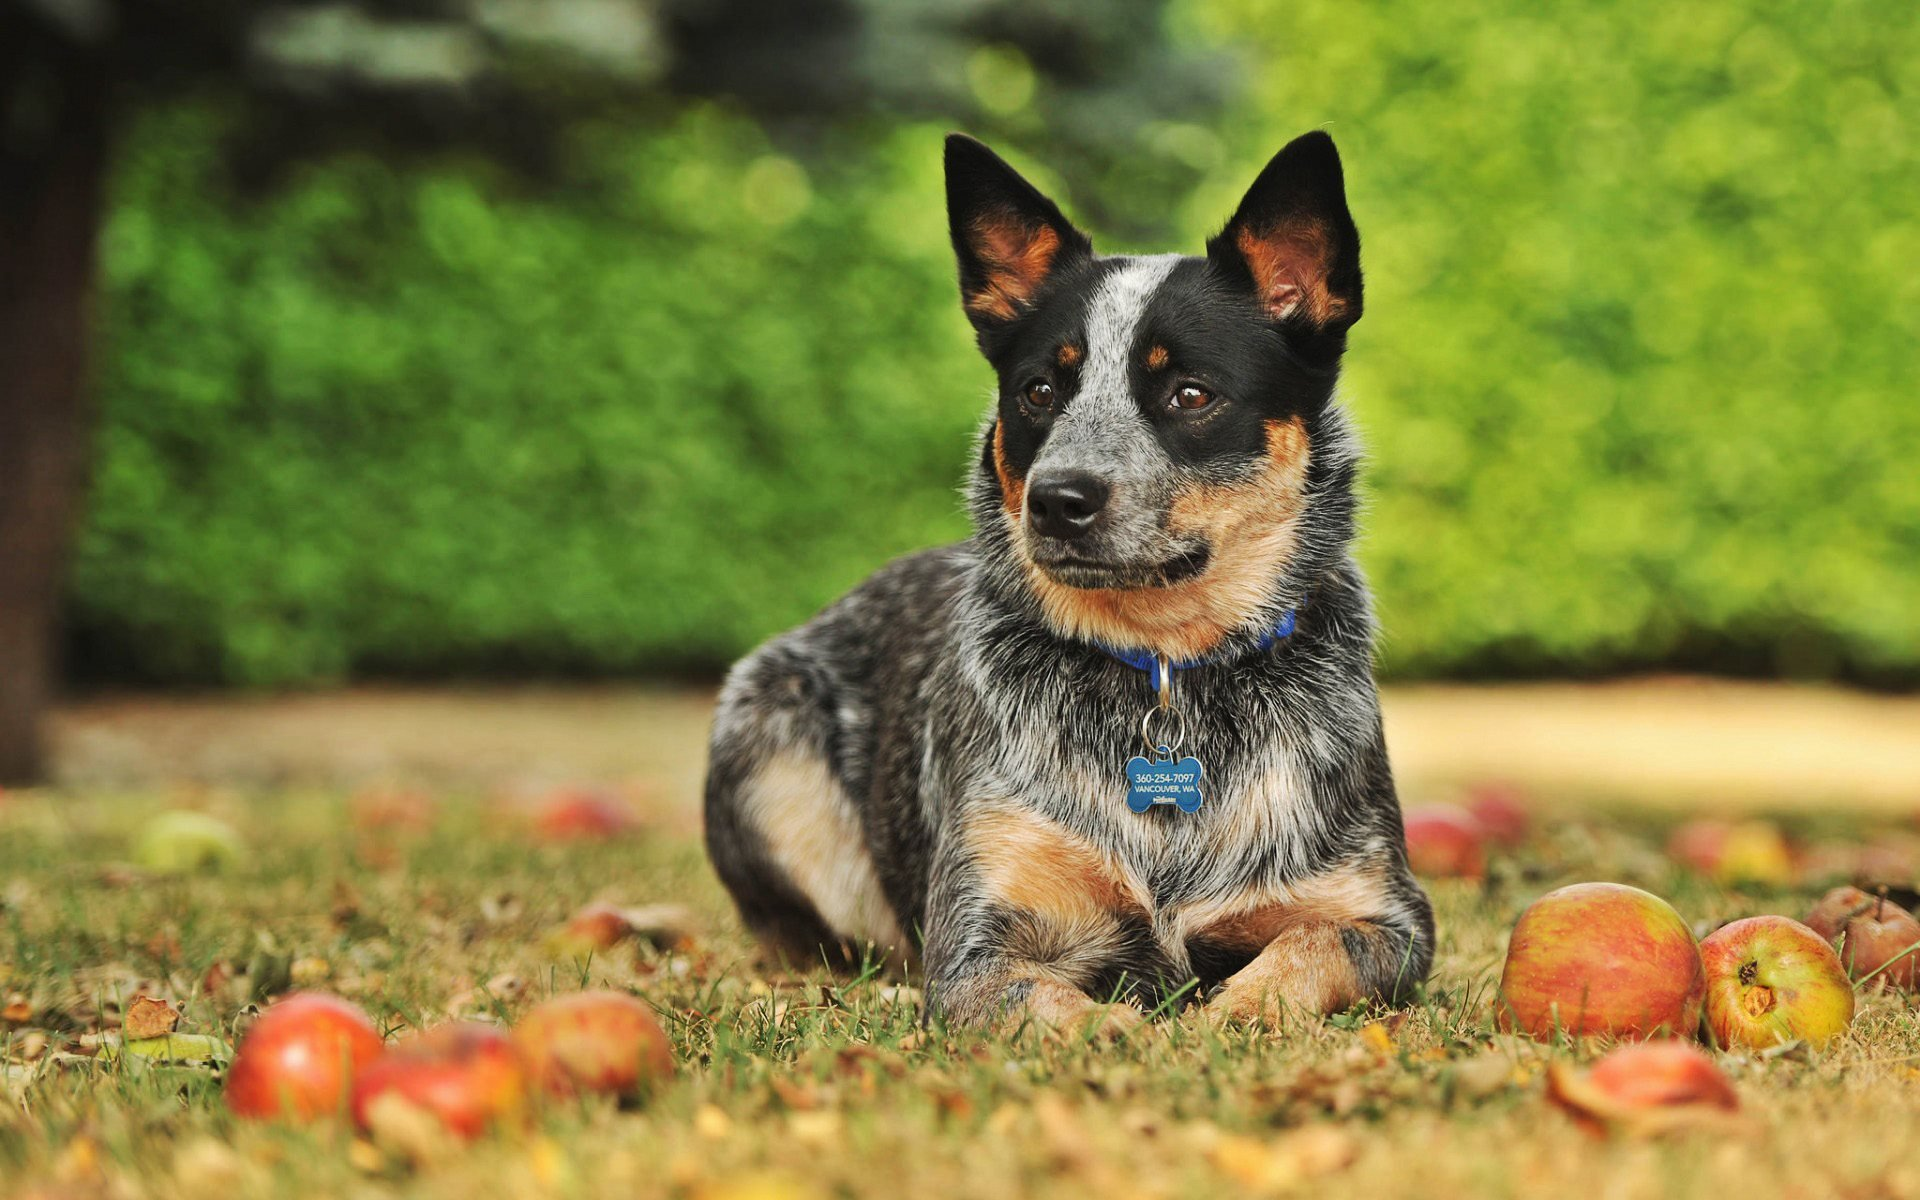 Download wallpapers Blue Heeler autumn Australian Cattle Dog 1920x1200